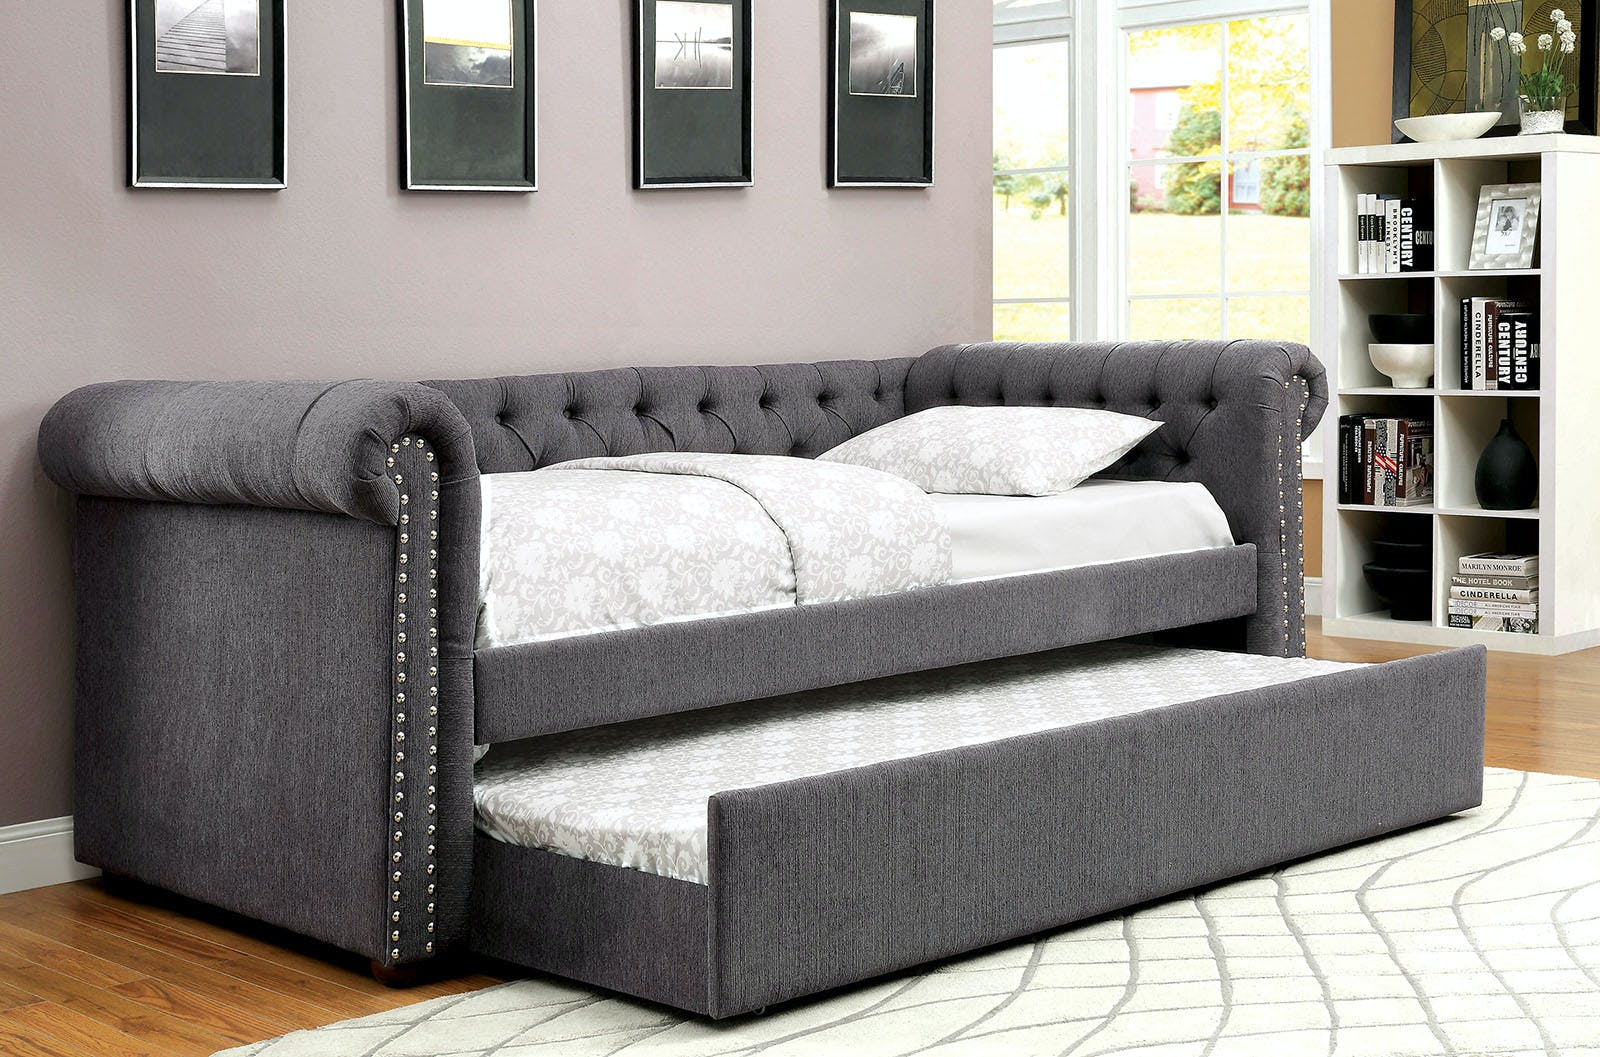 Furniture Of America Bedroom Full Daybed W Trundle Gray Cm1027gy F Bed The Furniture Mall